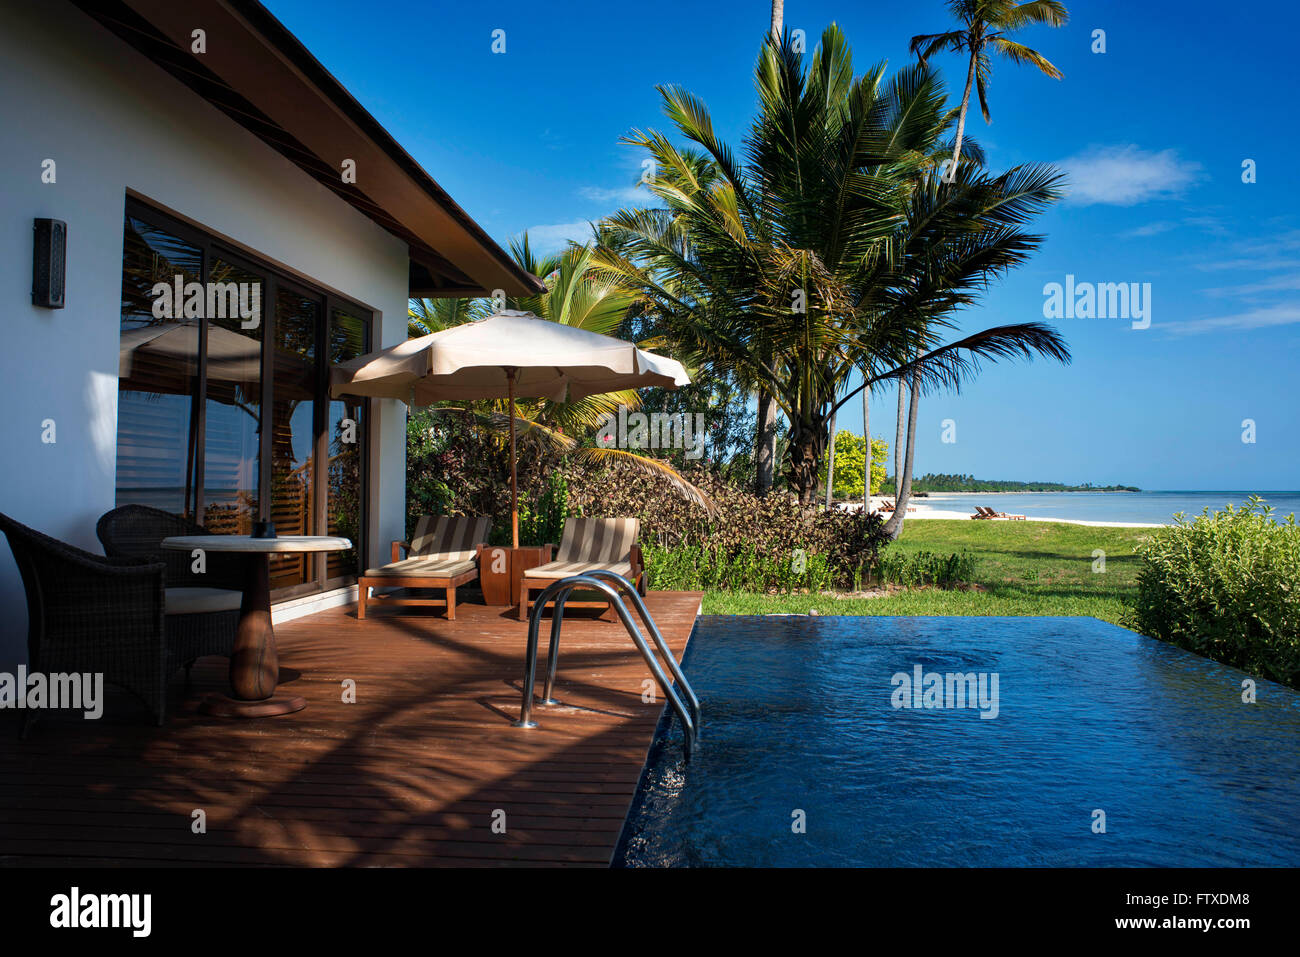 Swimming pool and outside luxury villa in The Residence Hotel in Zanzibar island a semi-autonomous part of Tanzania, - Stock Image